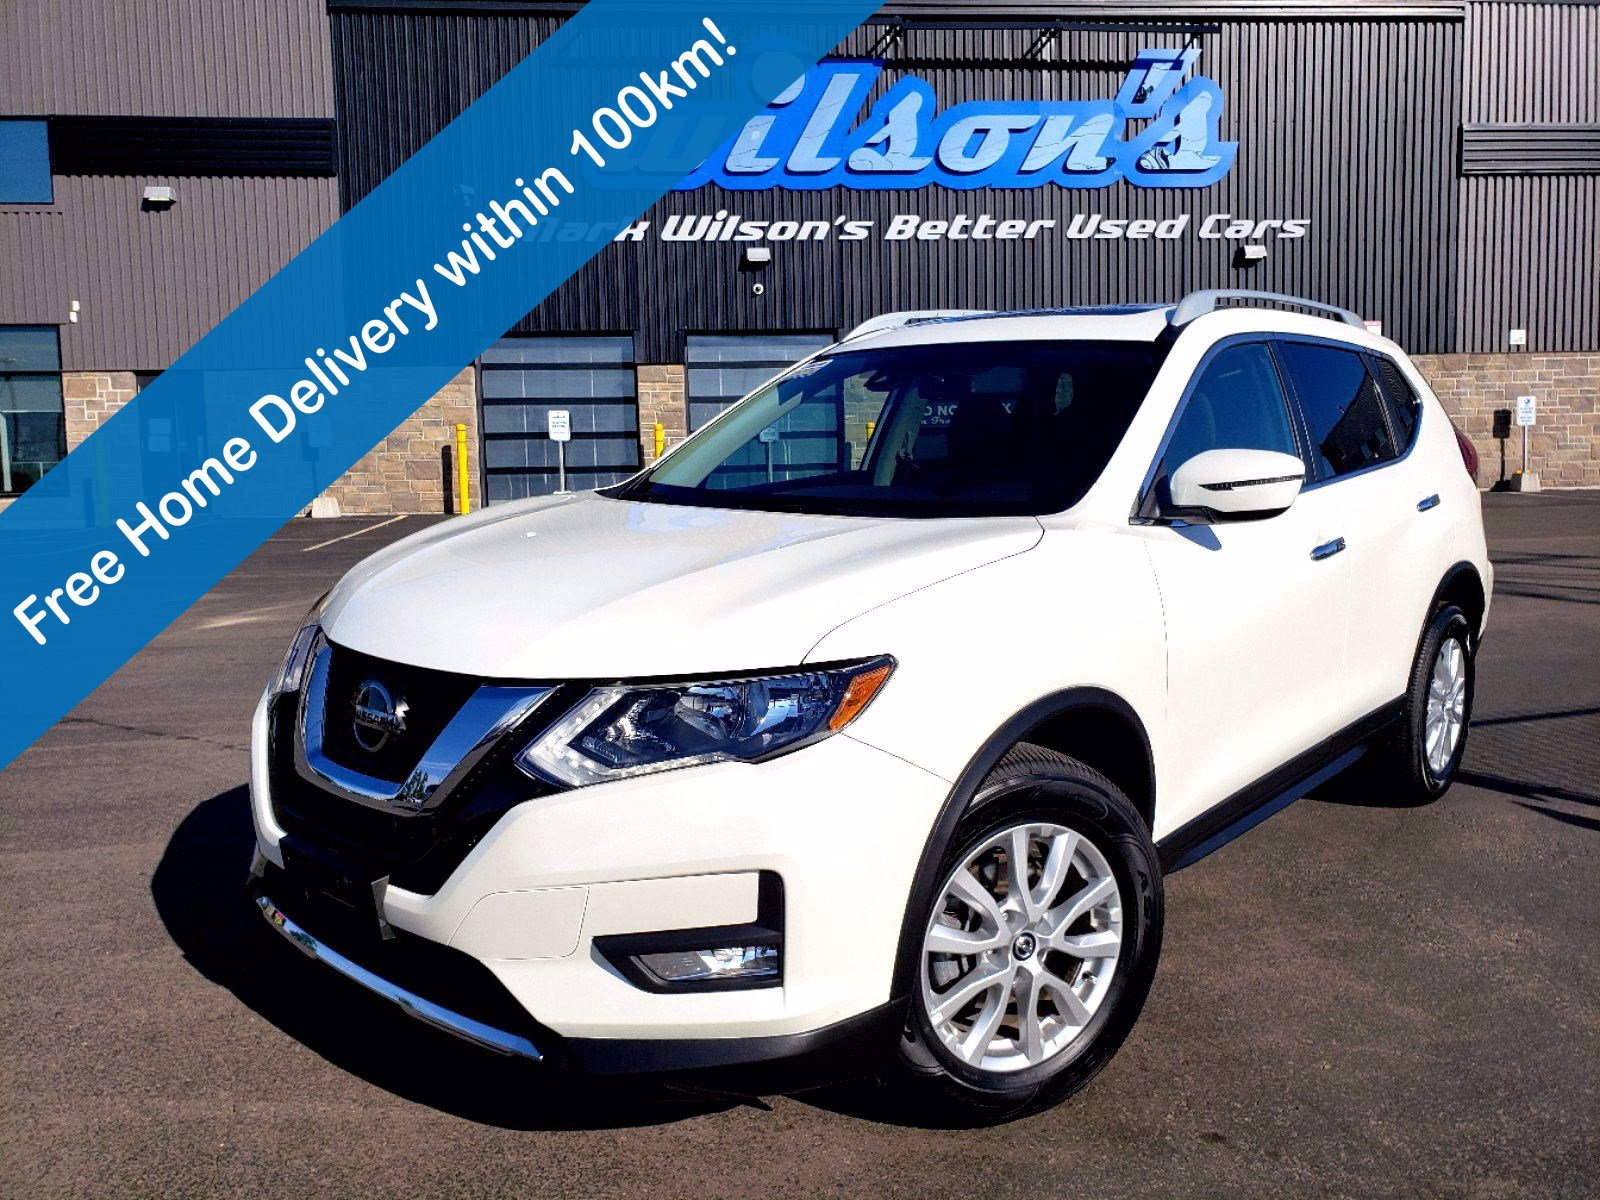 Certified Pre-Owned 2020 Nissan Rogue SV AWD, Sunroof, Remote Start, Heated Seats, Apple CarPlay + Android Auto, and more!